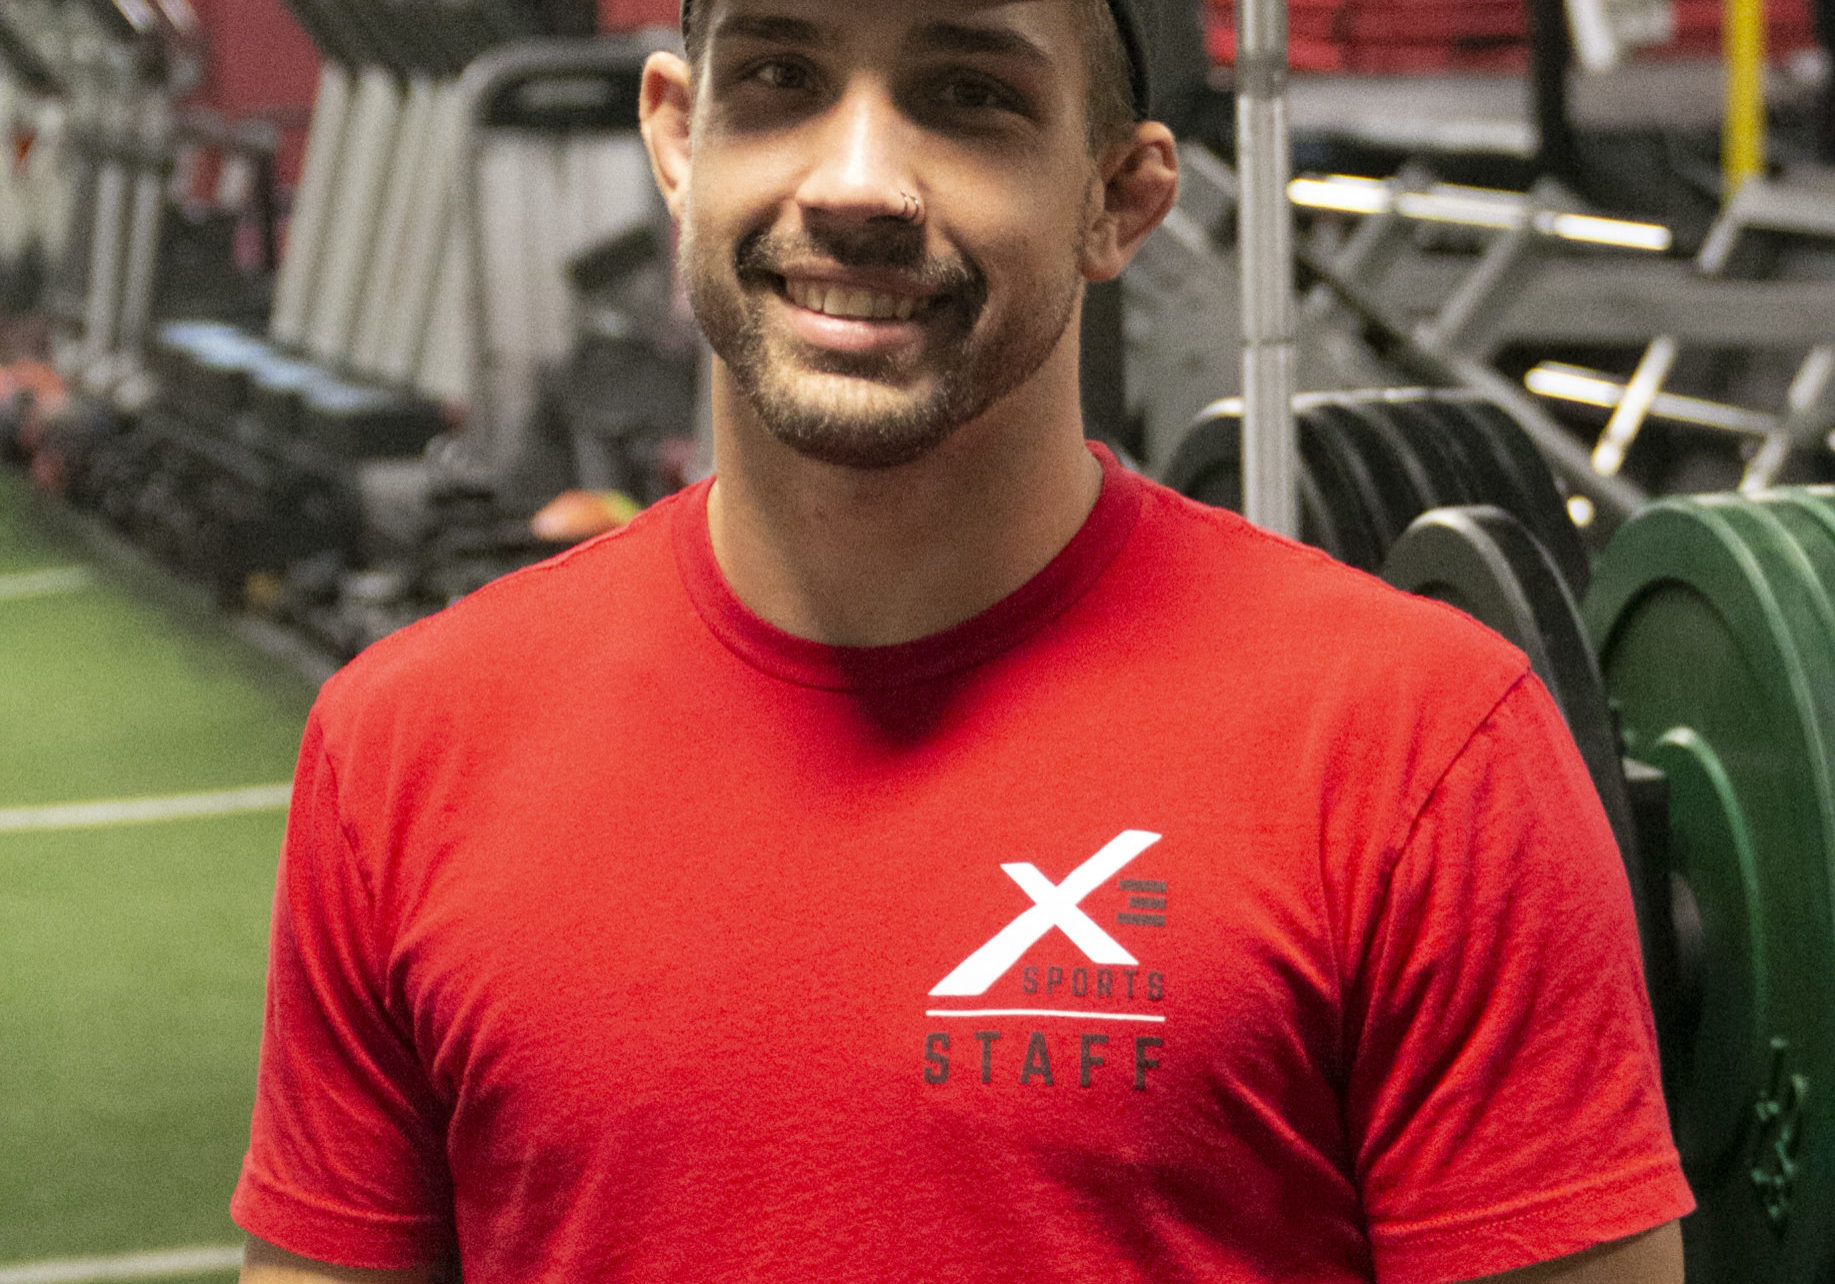 Robert Shonfelt at X3 Sports West Midtown